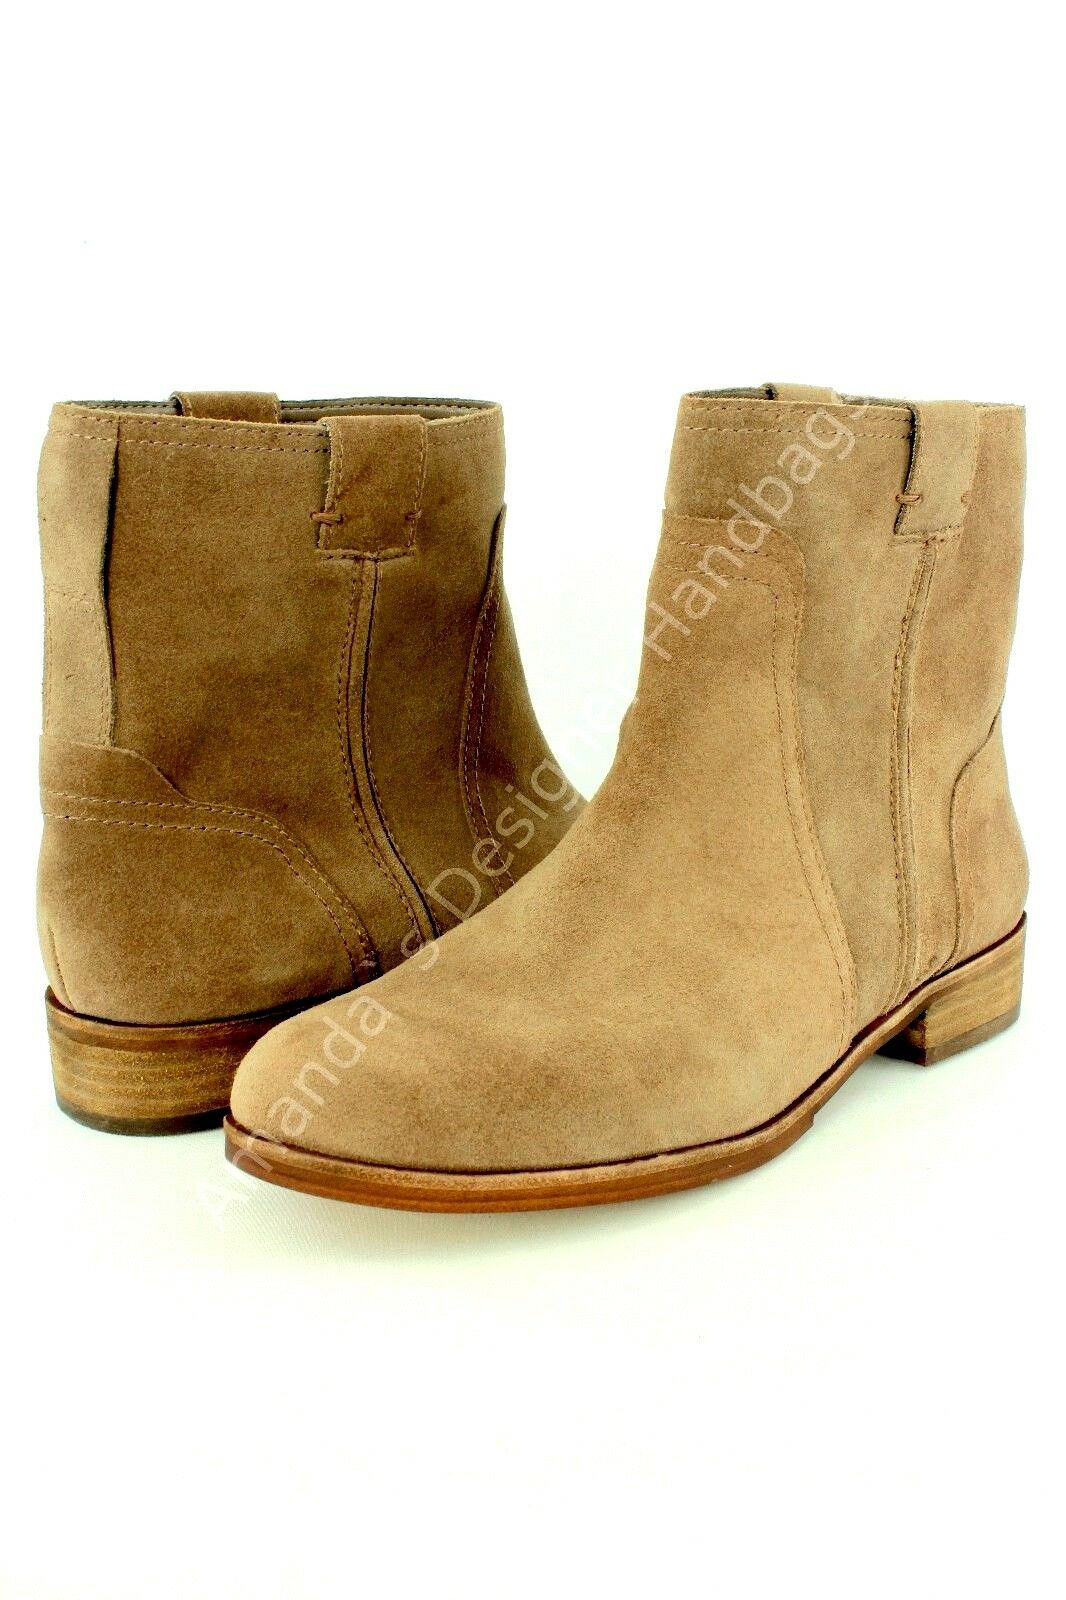 VINCE CAMUTO Womens VC-Ruty Brown Short Boots US 9.5M